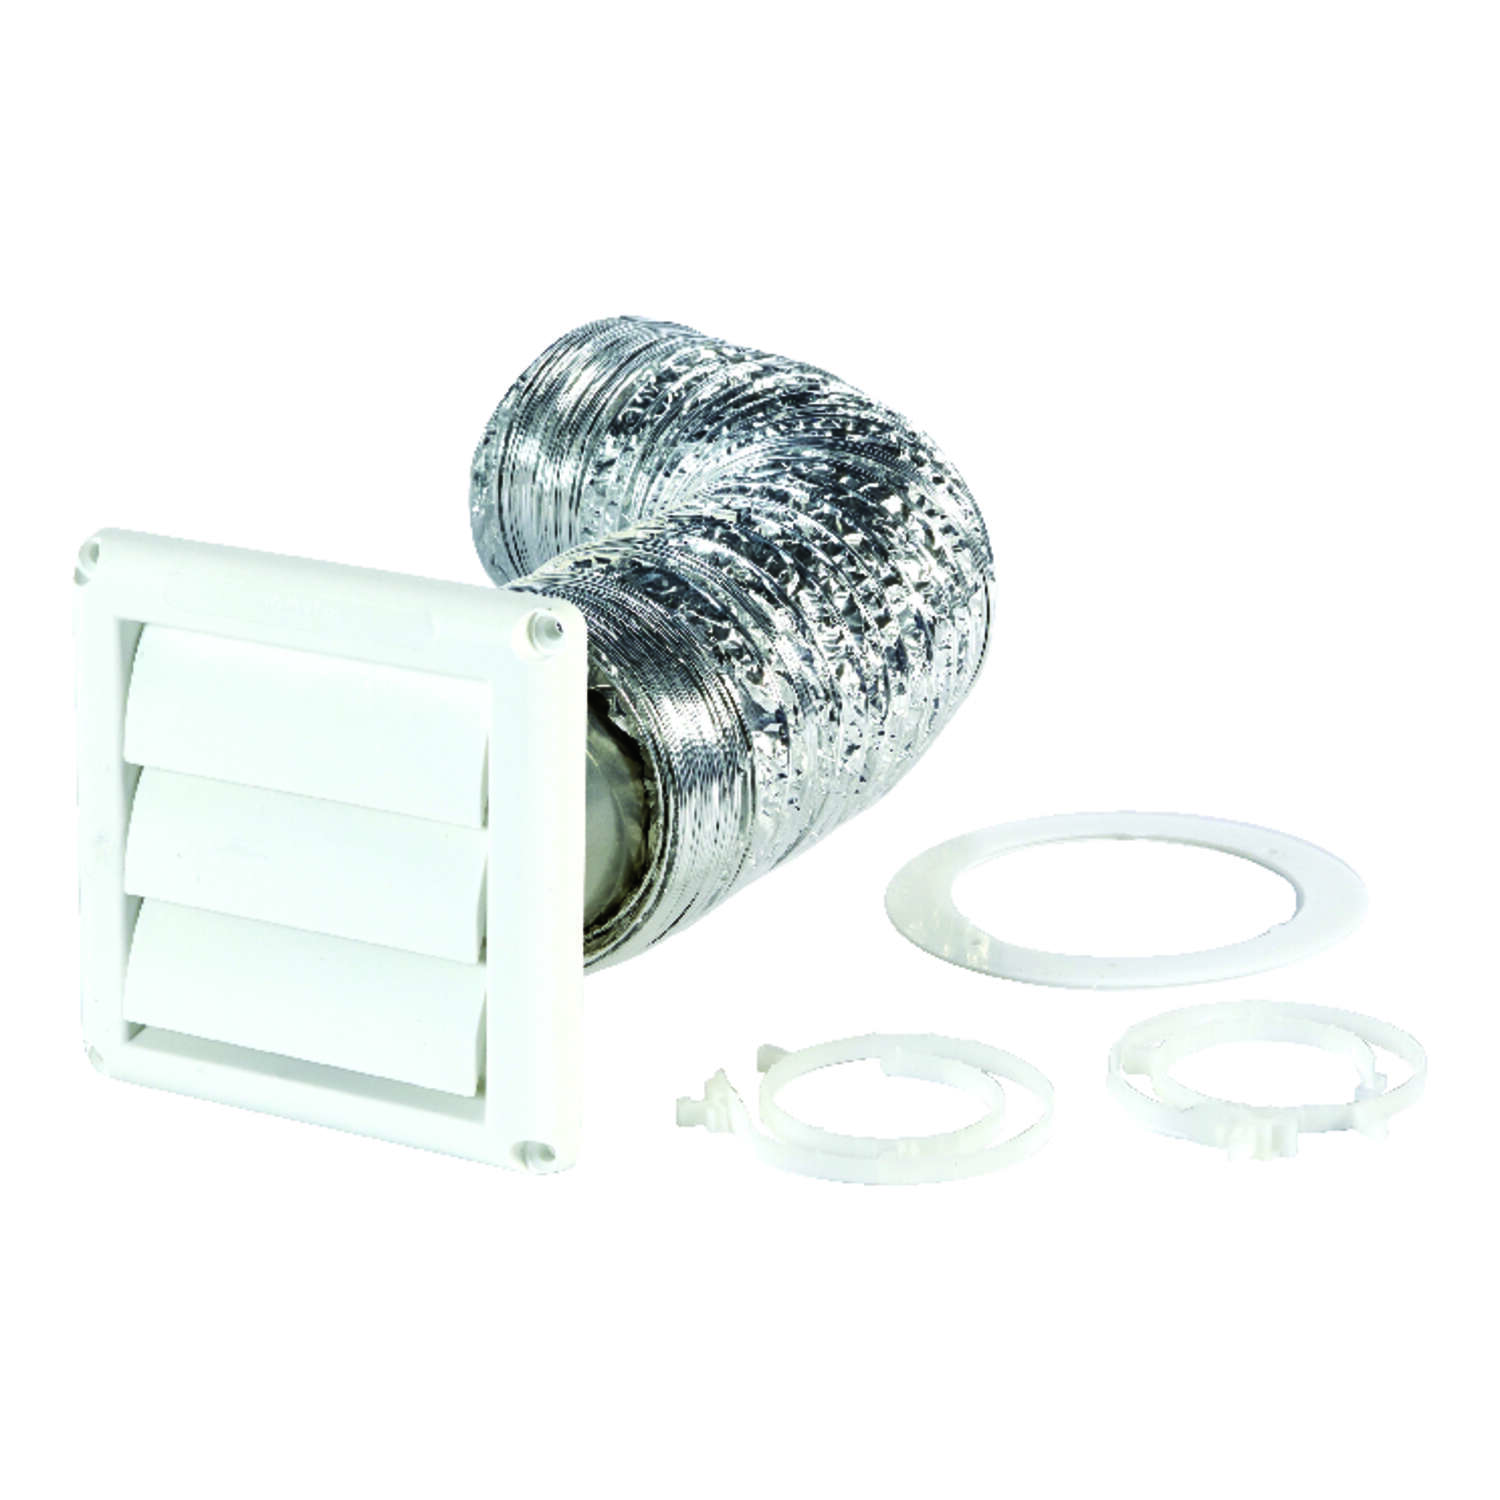 Ace  4 in. W x 5 in. L White  Plastic  Dryer Vent Kit